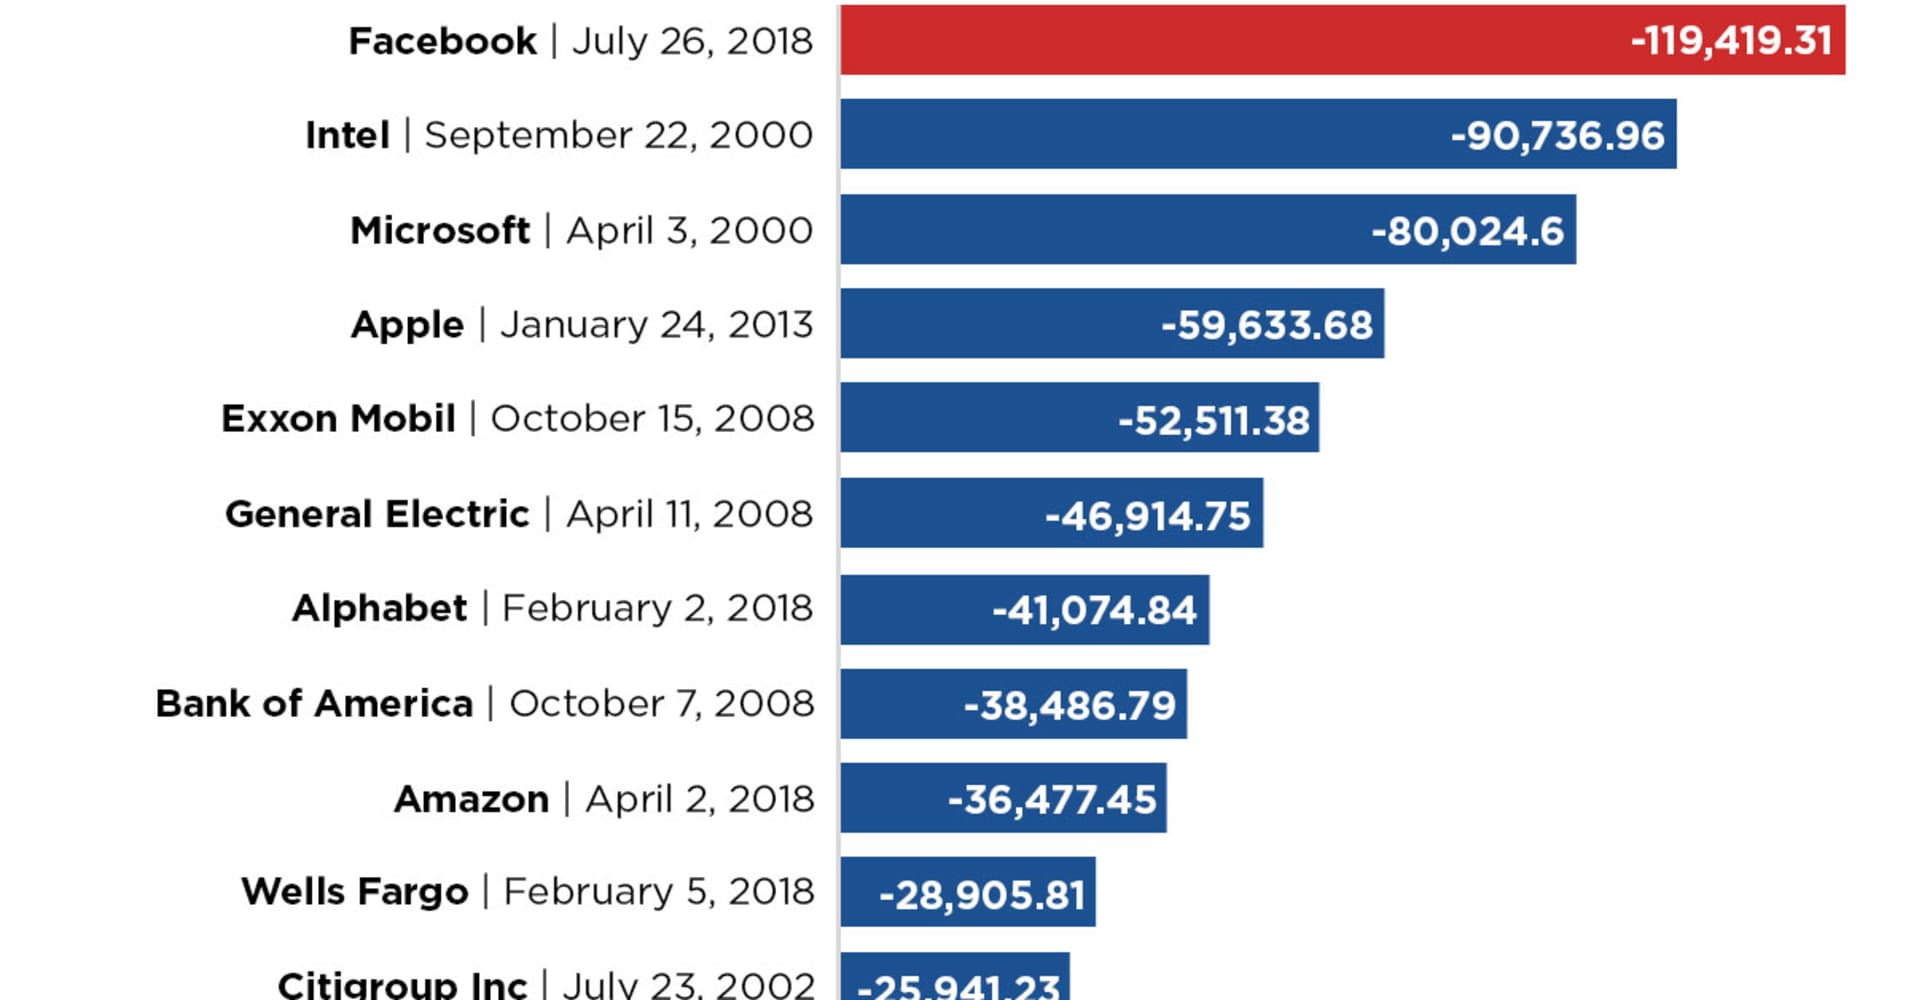 Facebooks 100 Billion Plus Rout Is The Biggest Loss In Stock